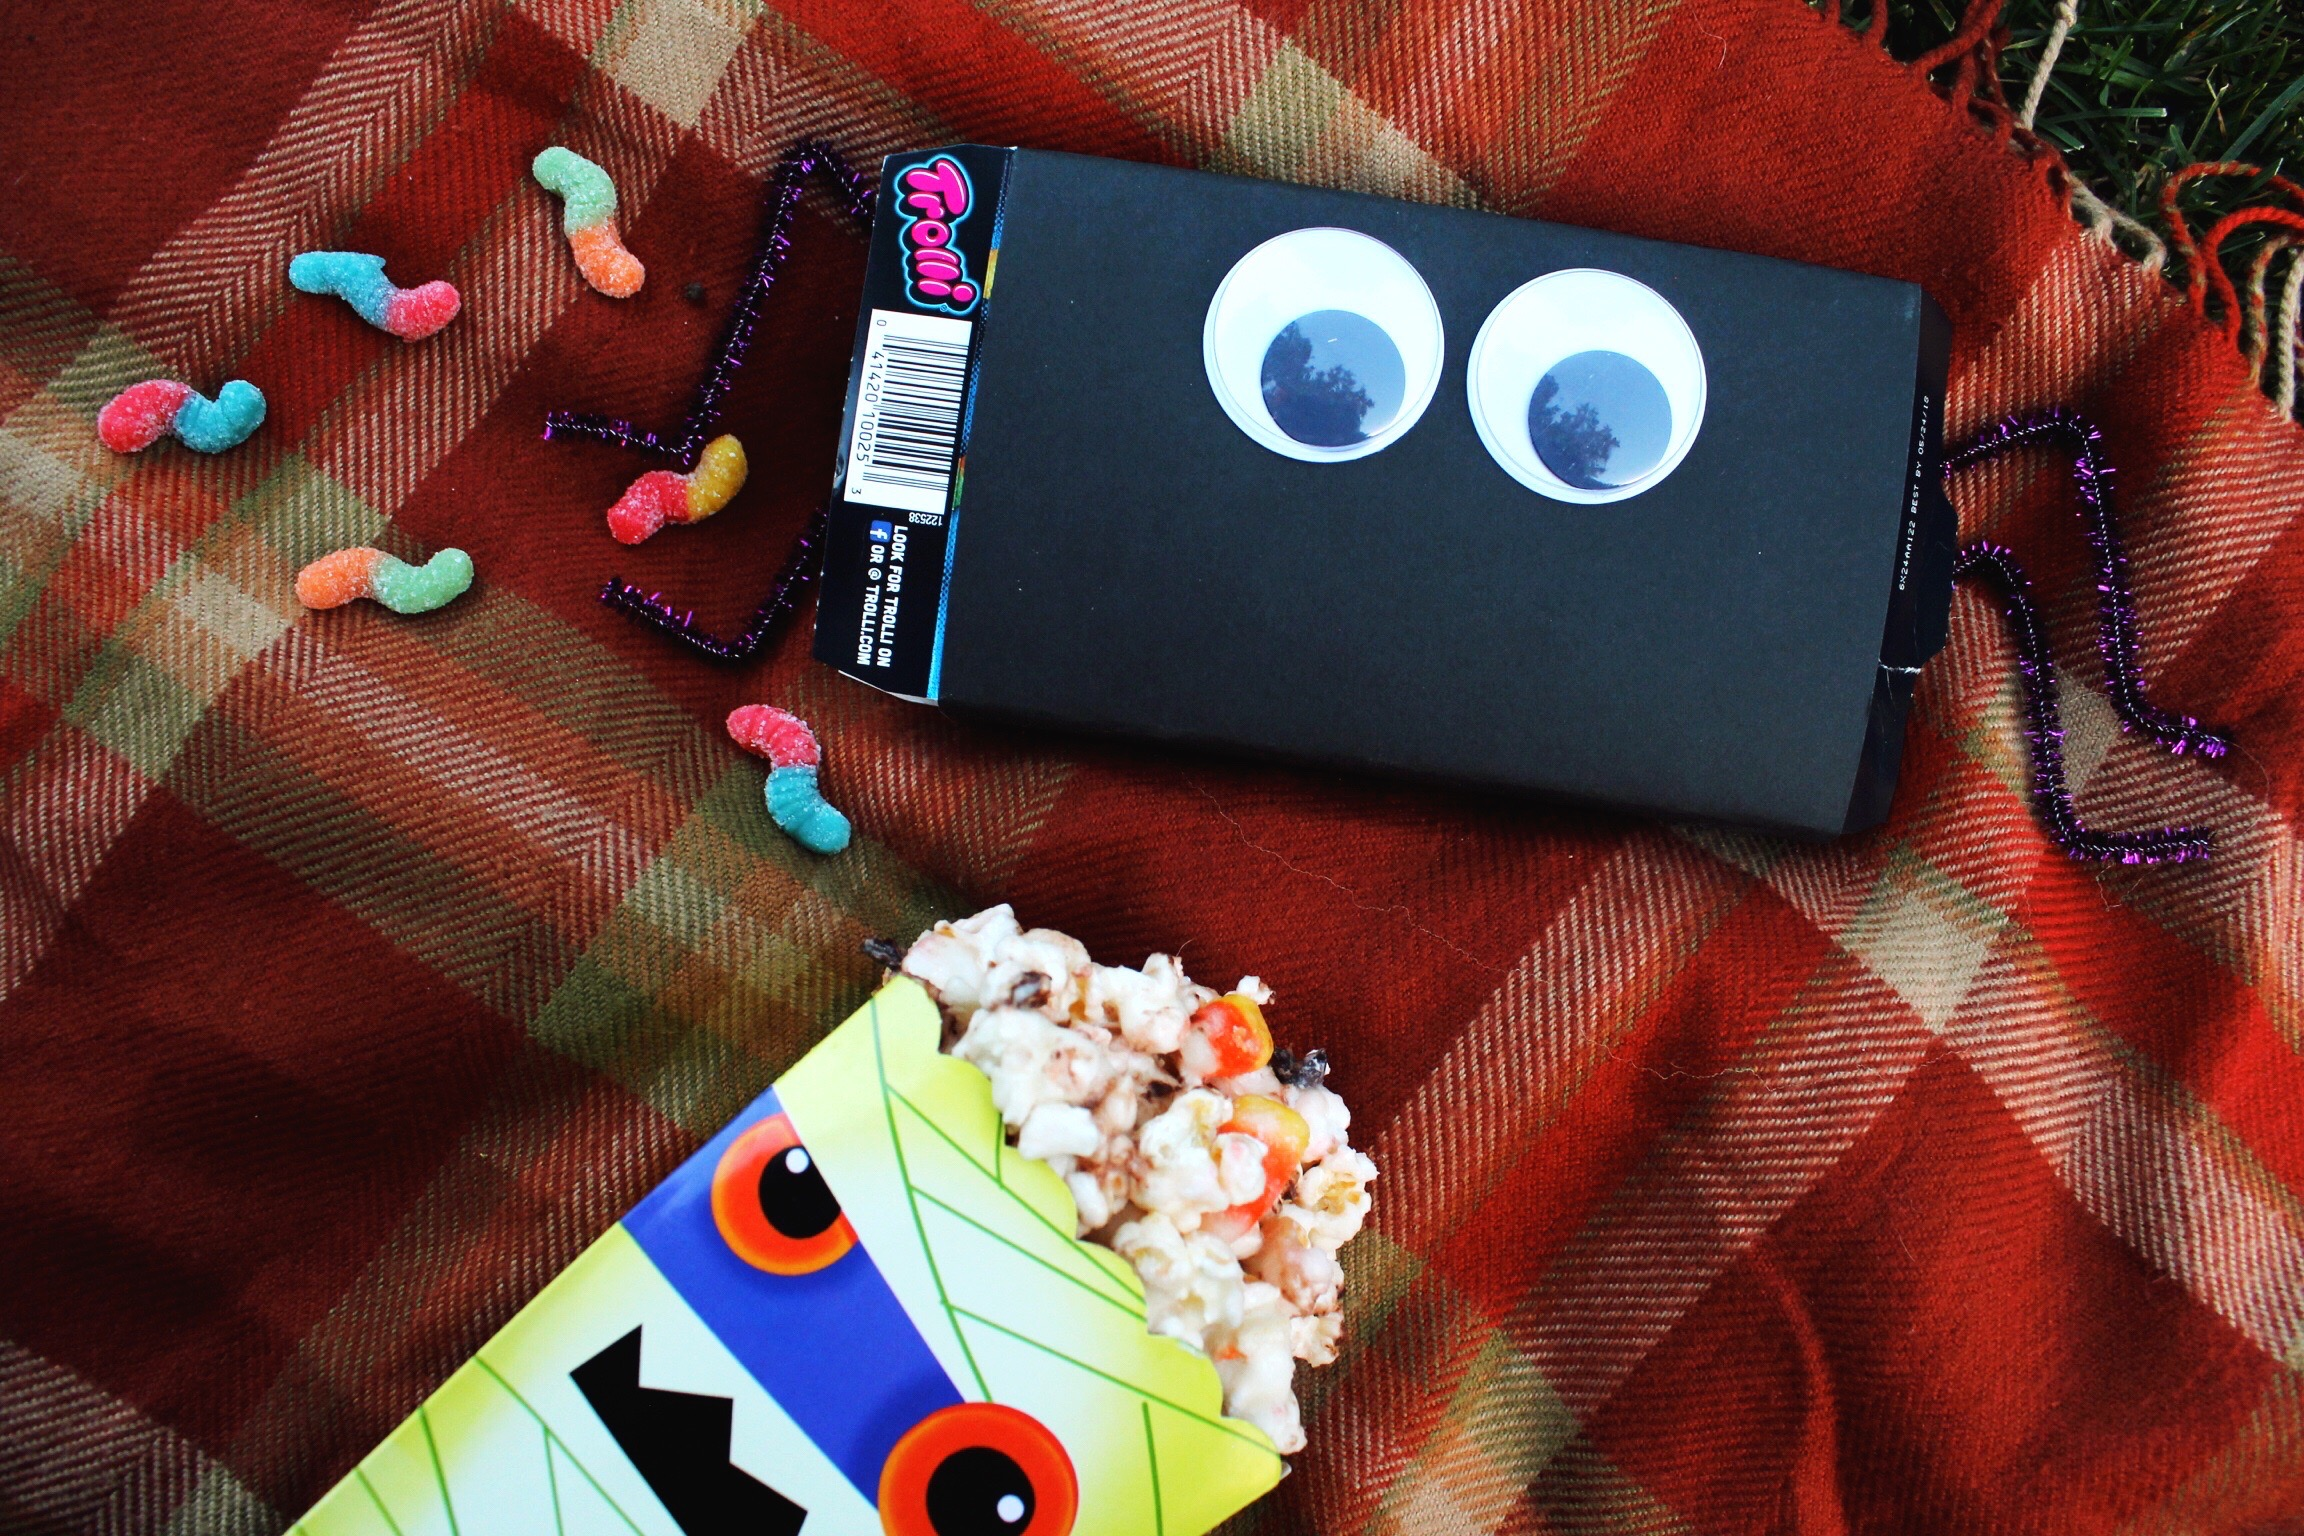 Halloween Outdoor Movie Night Snacks Popcorn Sour Gummy Worms Blanket Design Organize Party